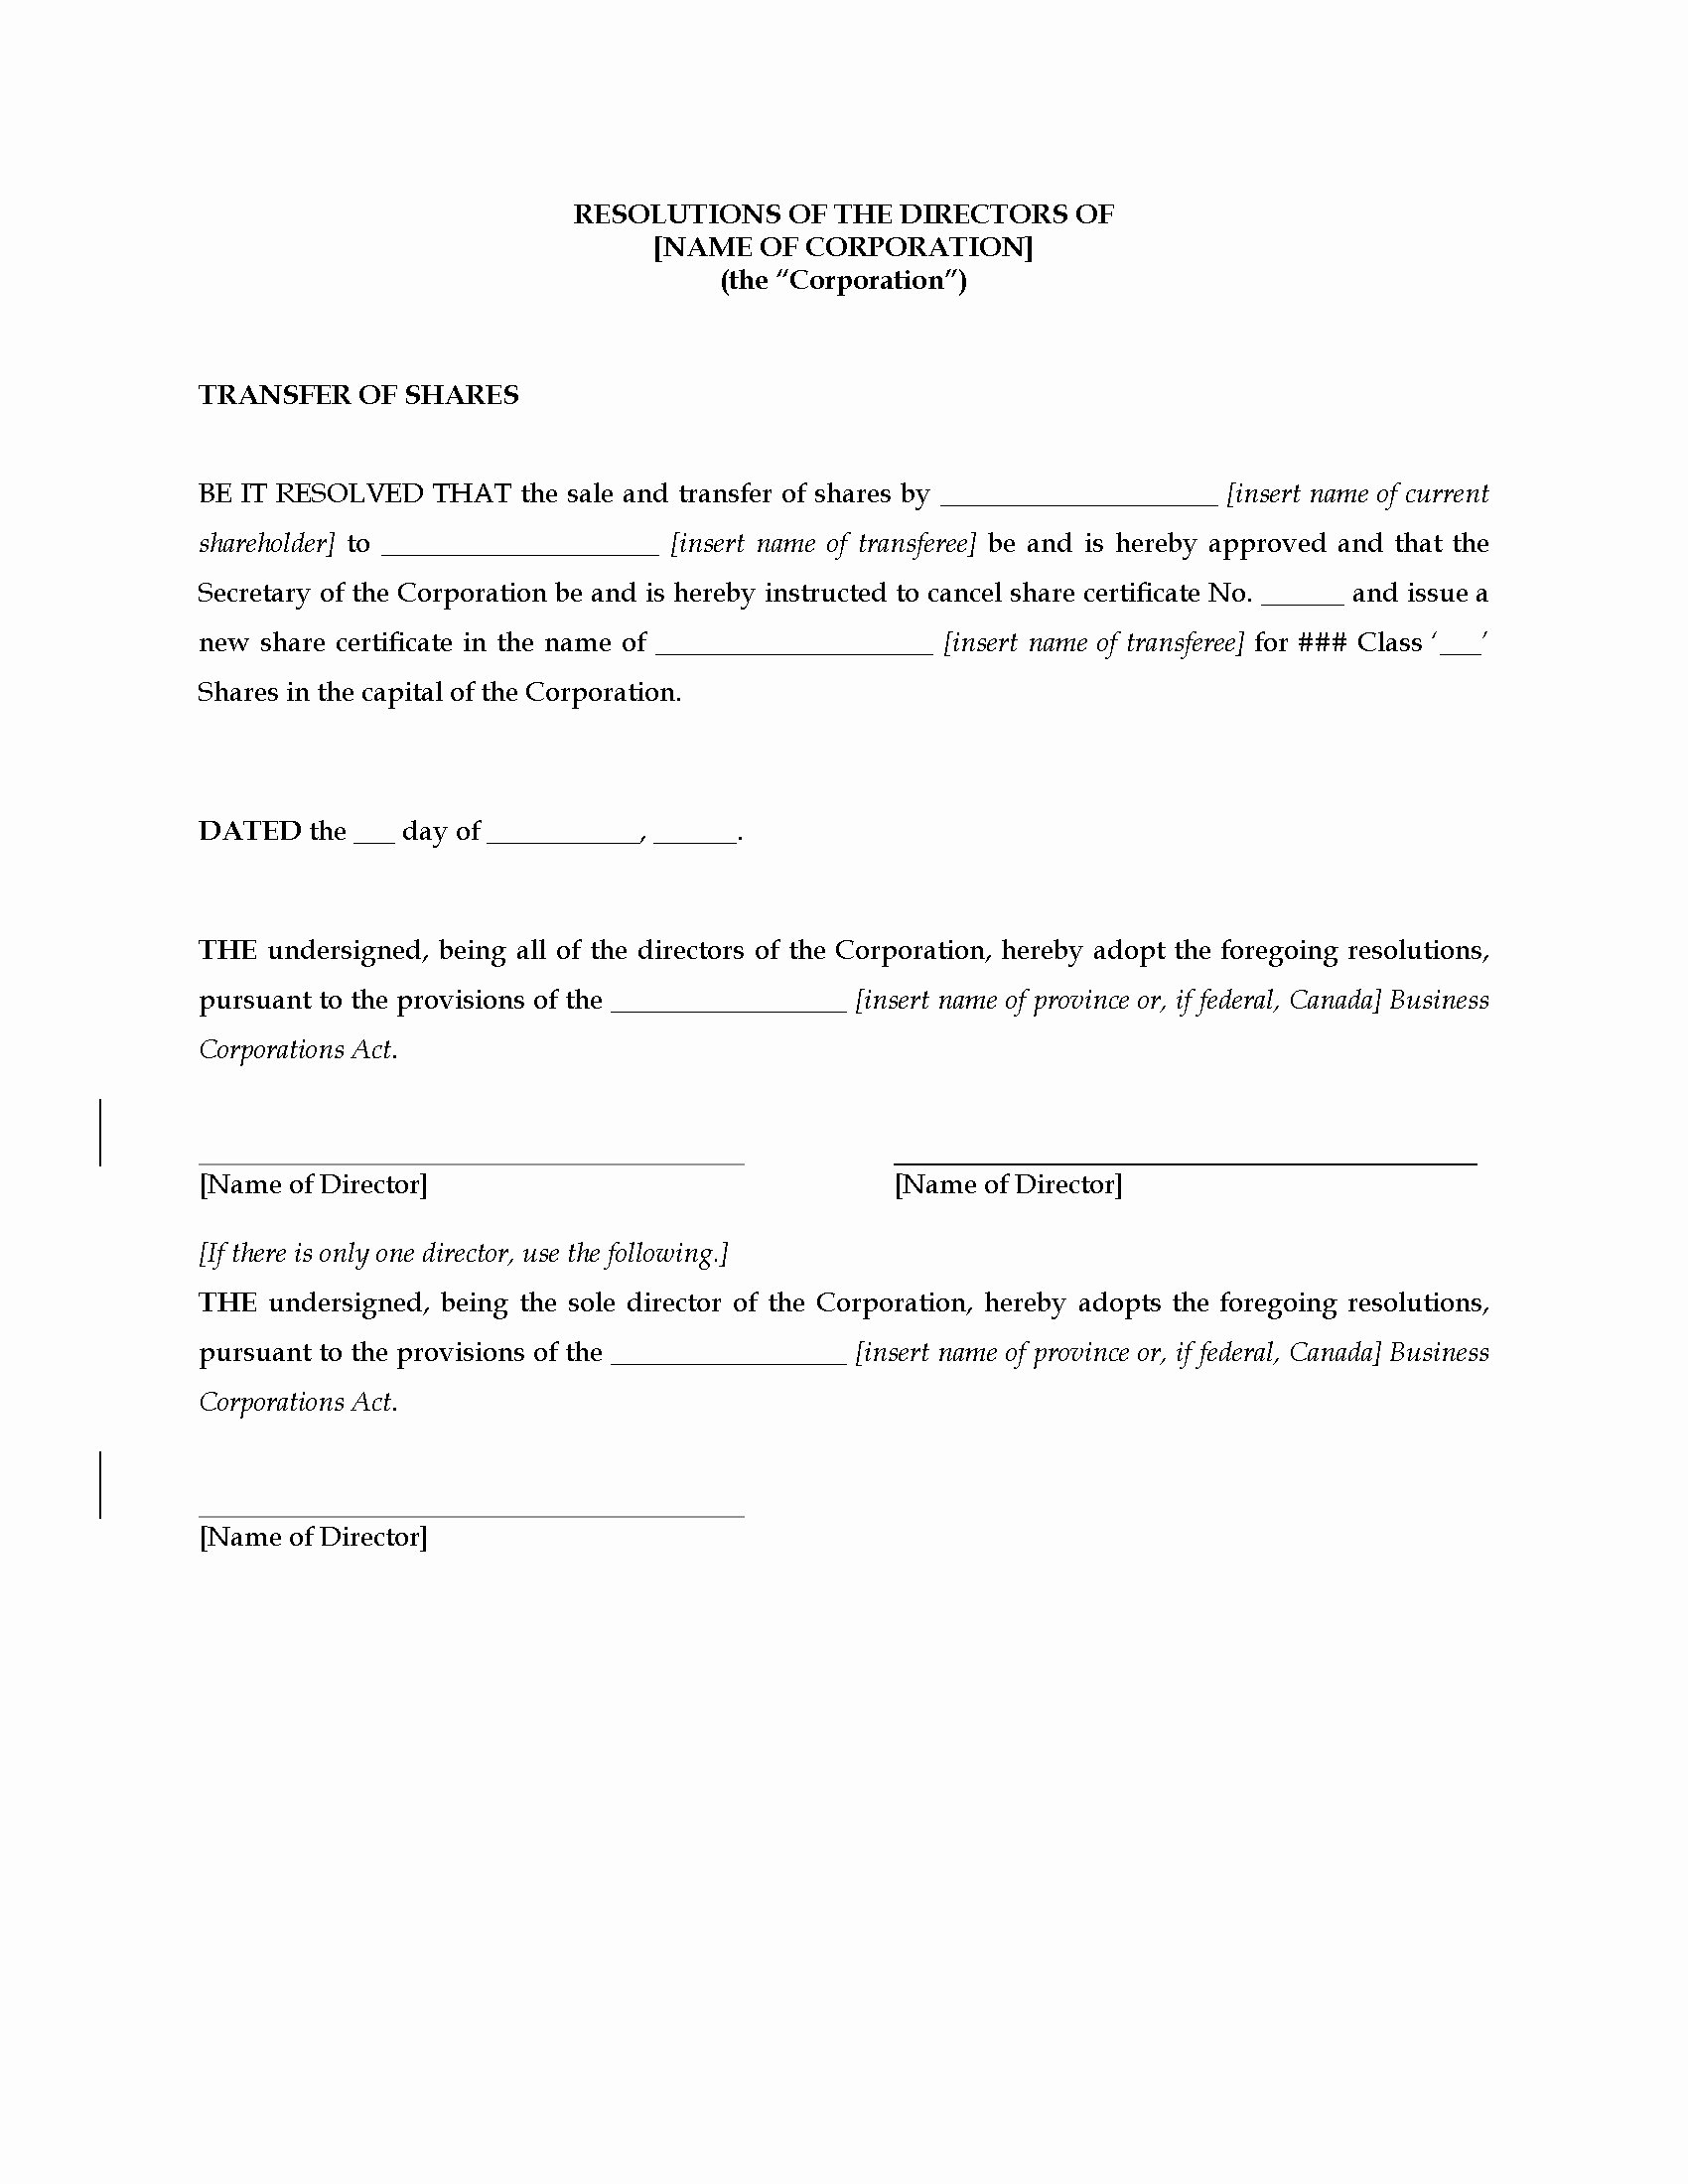 Board Of Directors Resolution Template New Canada Directors Resolution Approving Transfer